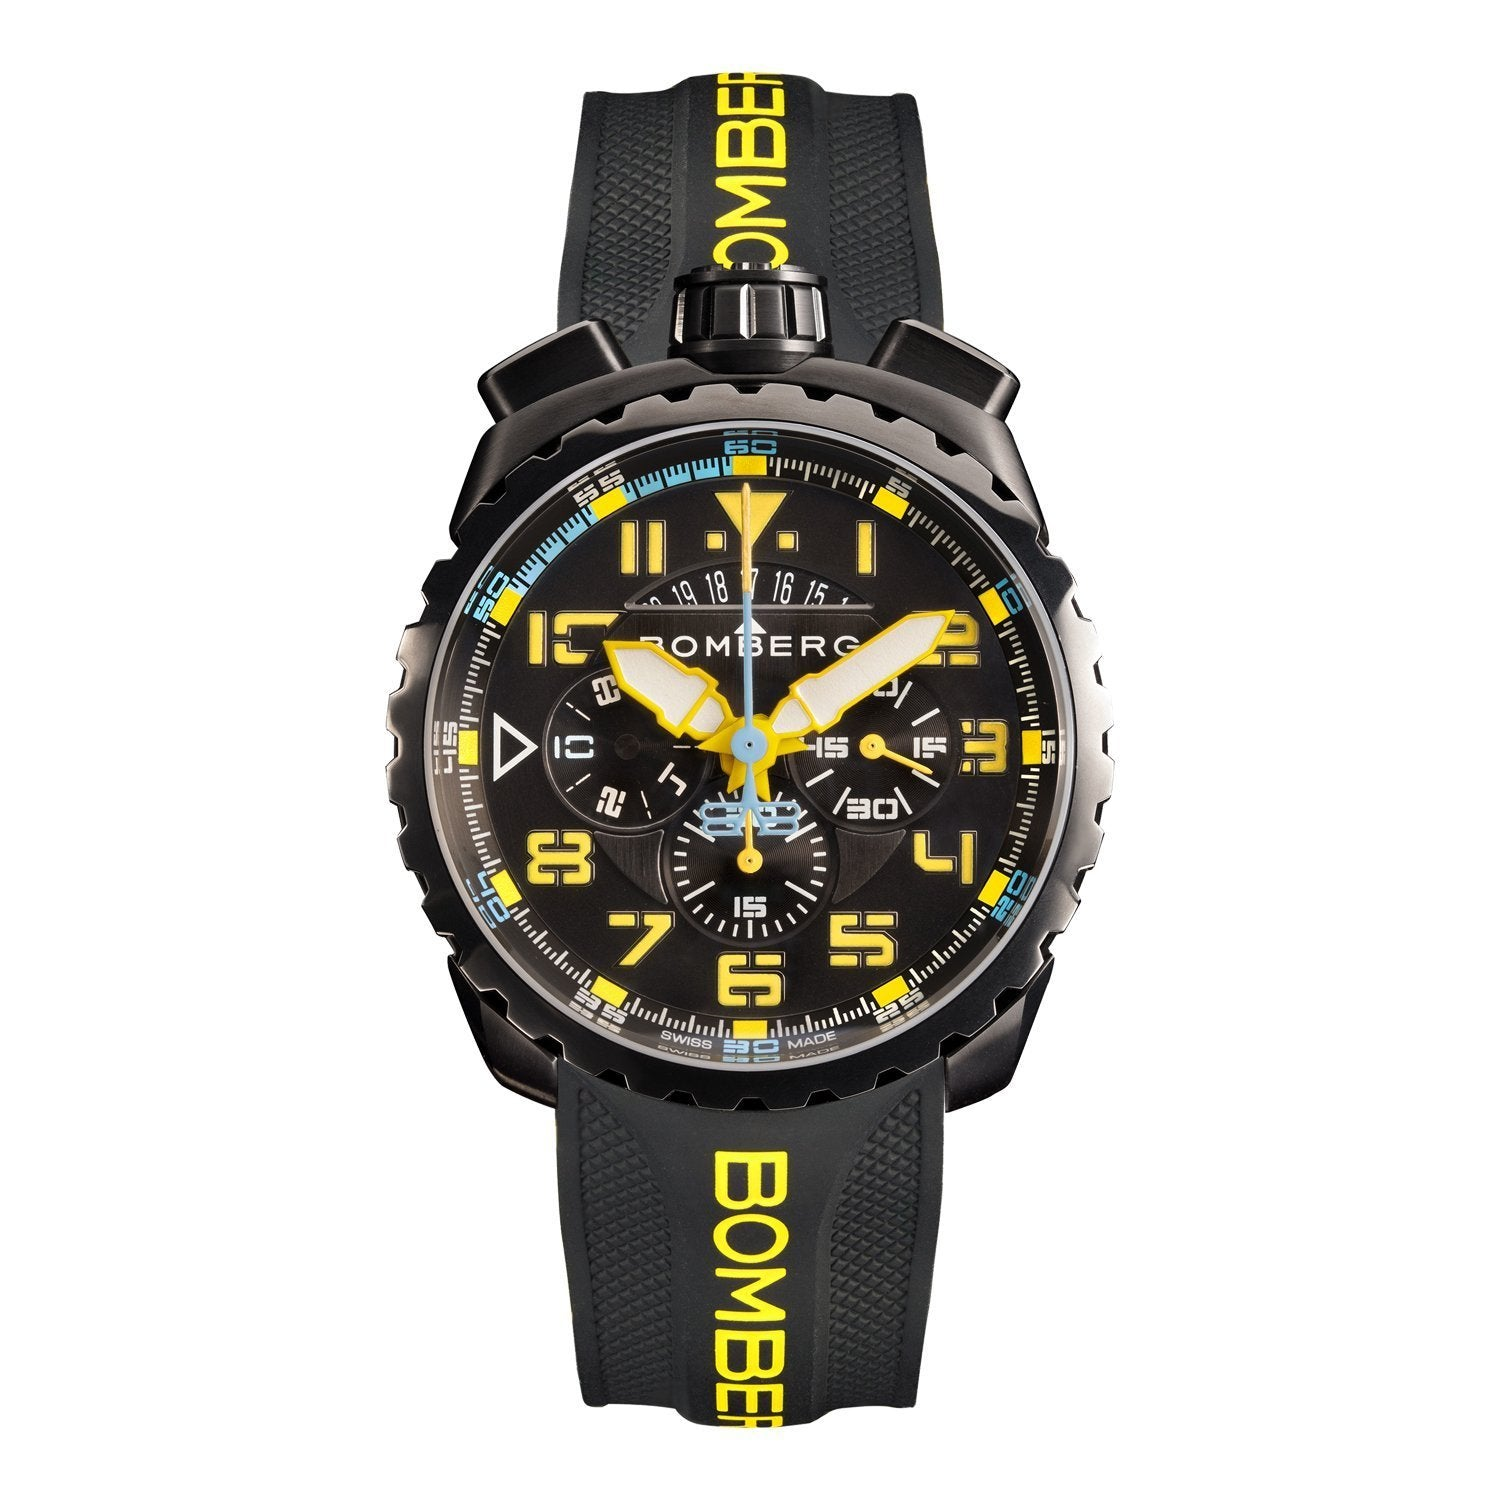 Bomberg BOLT-68 Chronograph Black PVD